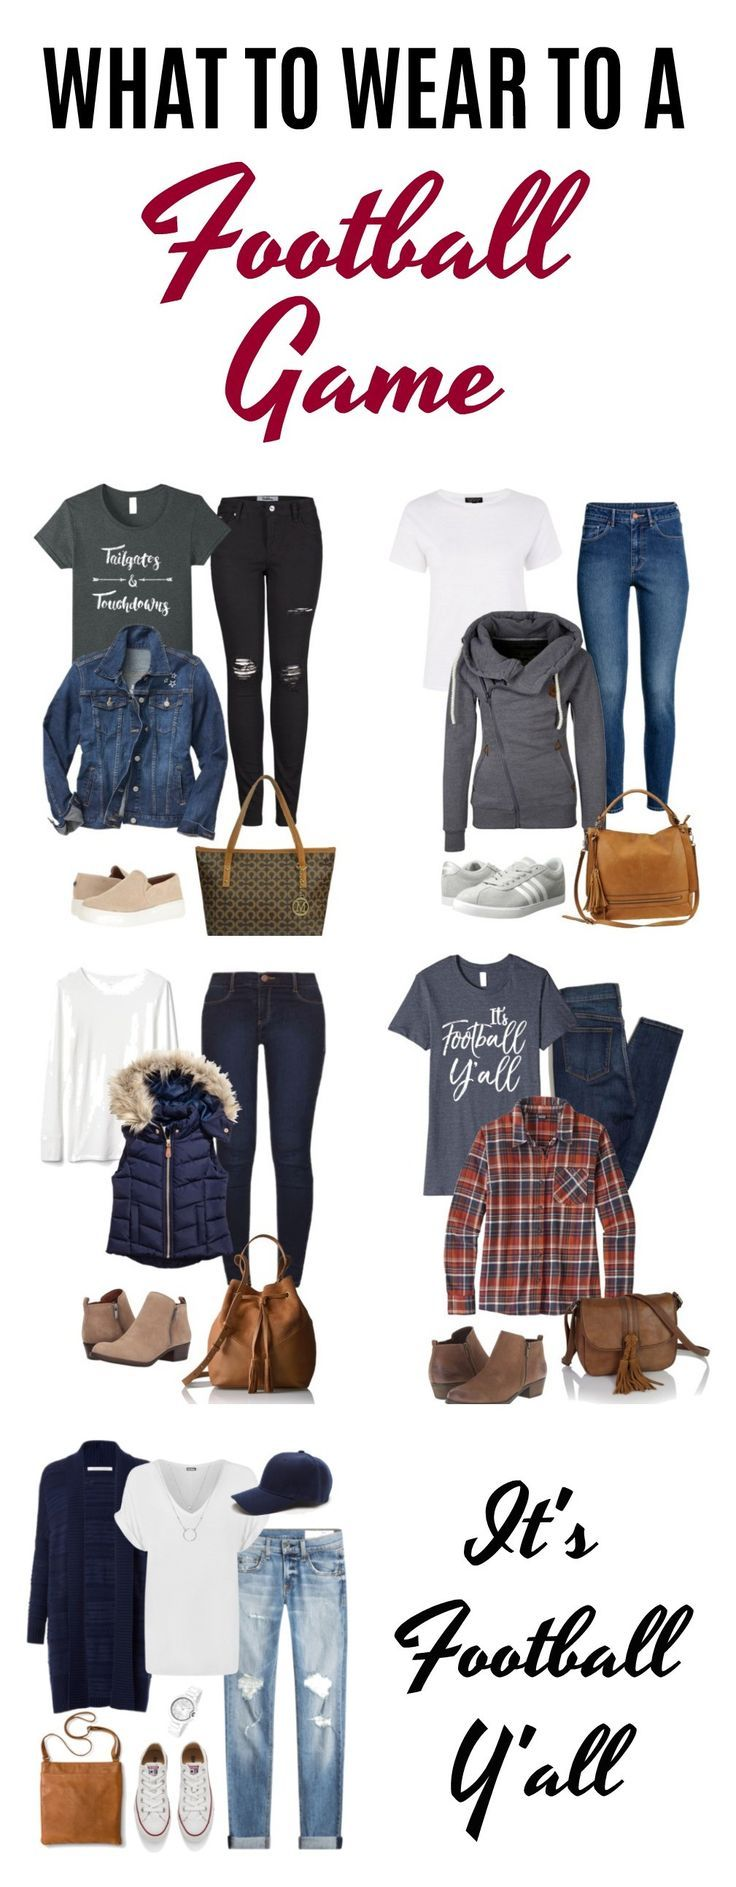 What to Wear to a Football Game (Women) – Outfits to Wear for Football Games